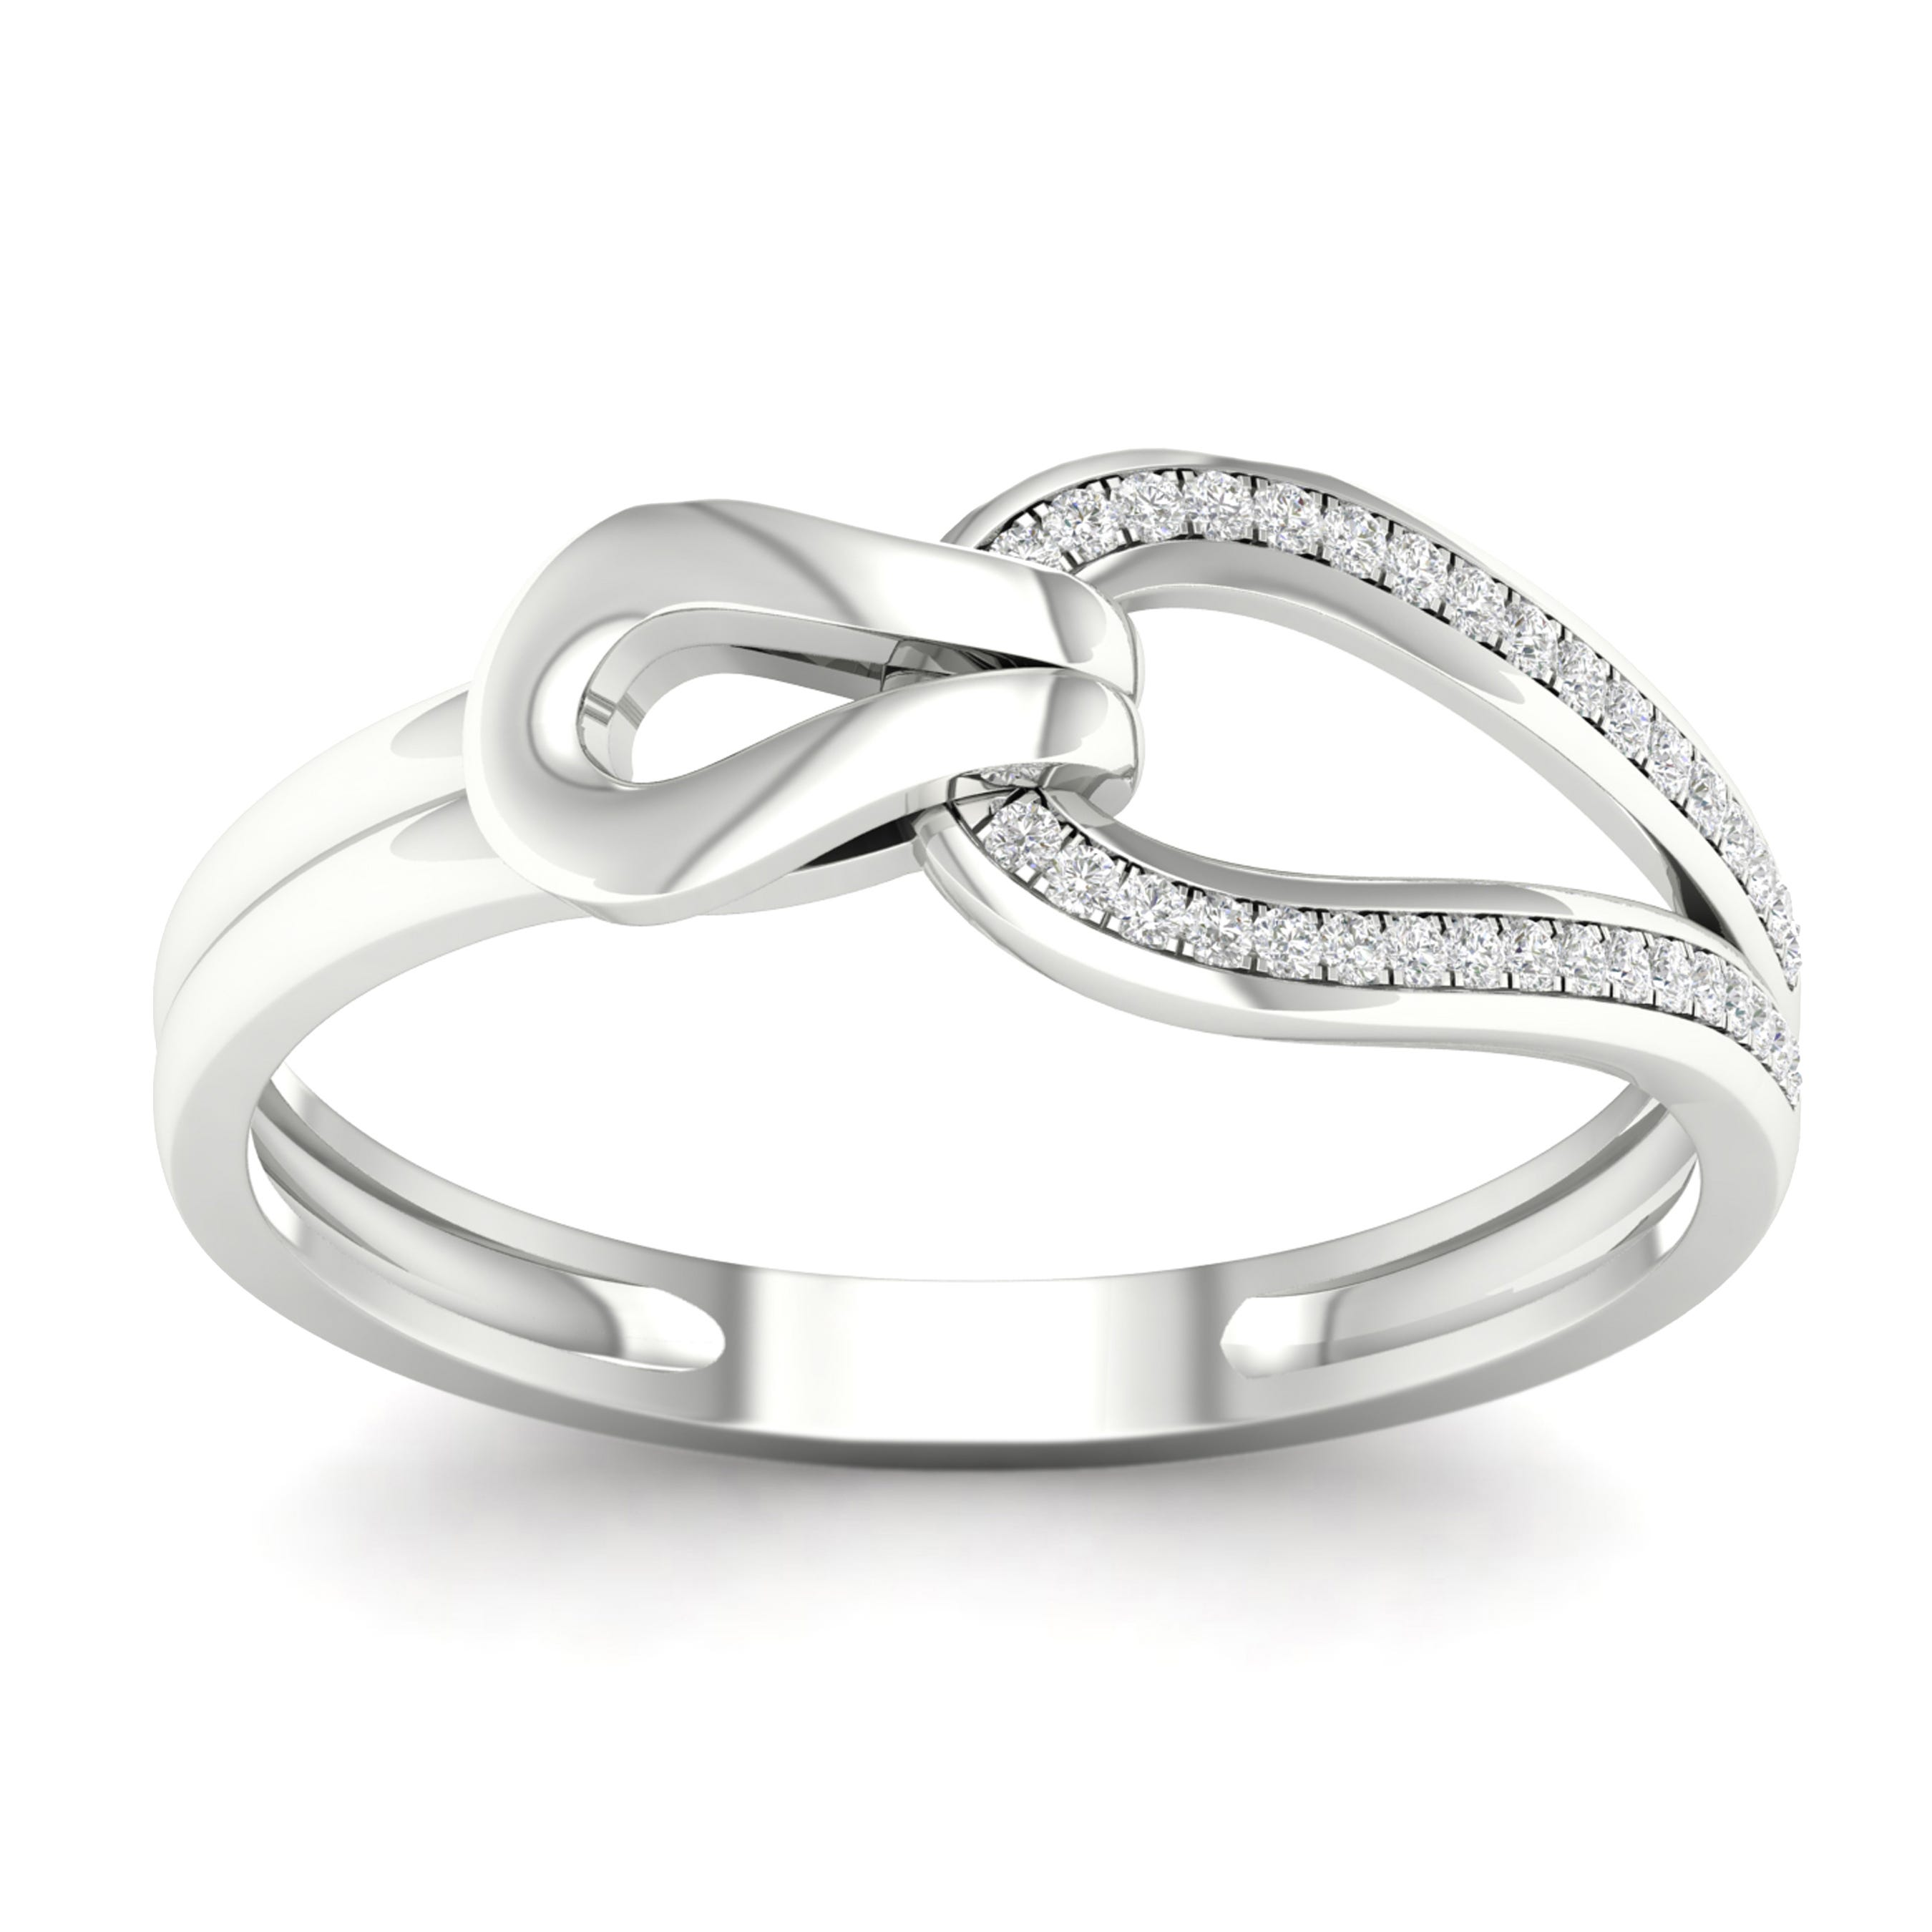 Diamond 1/10ctw. Love Knot Promise Ring in 10k White Gold